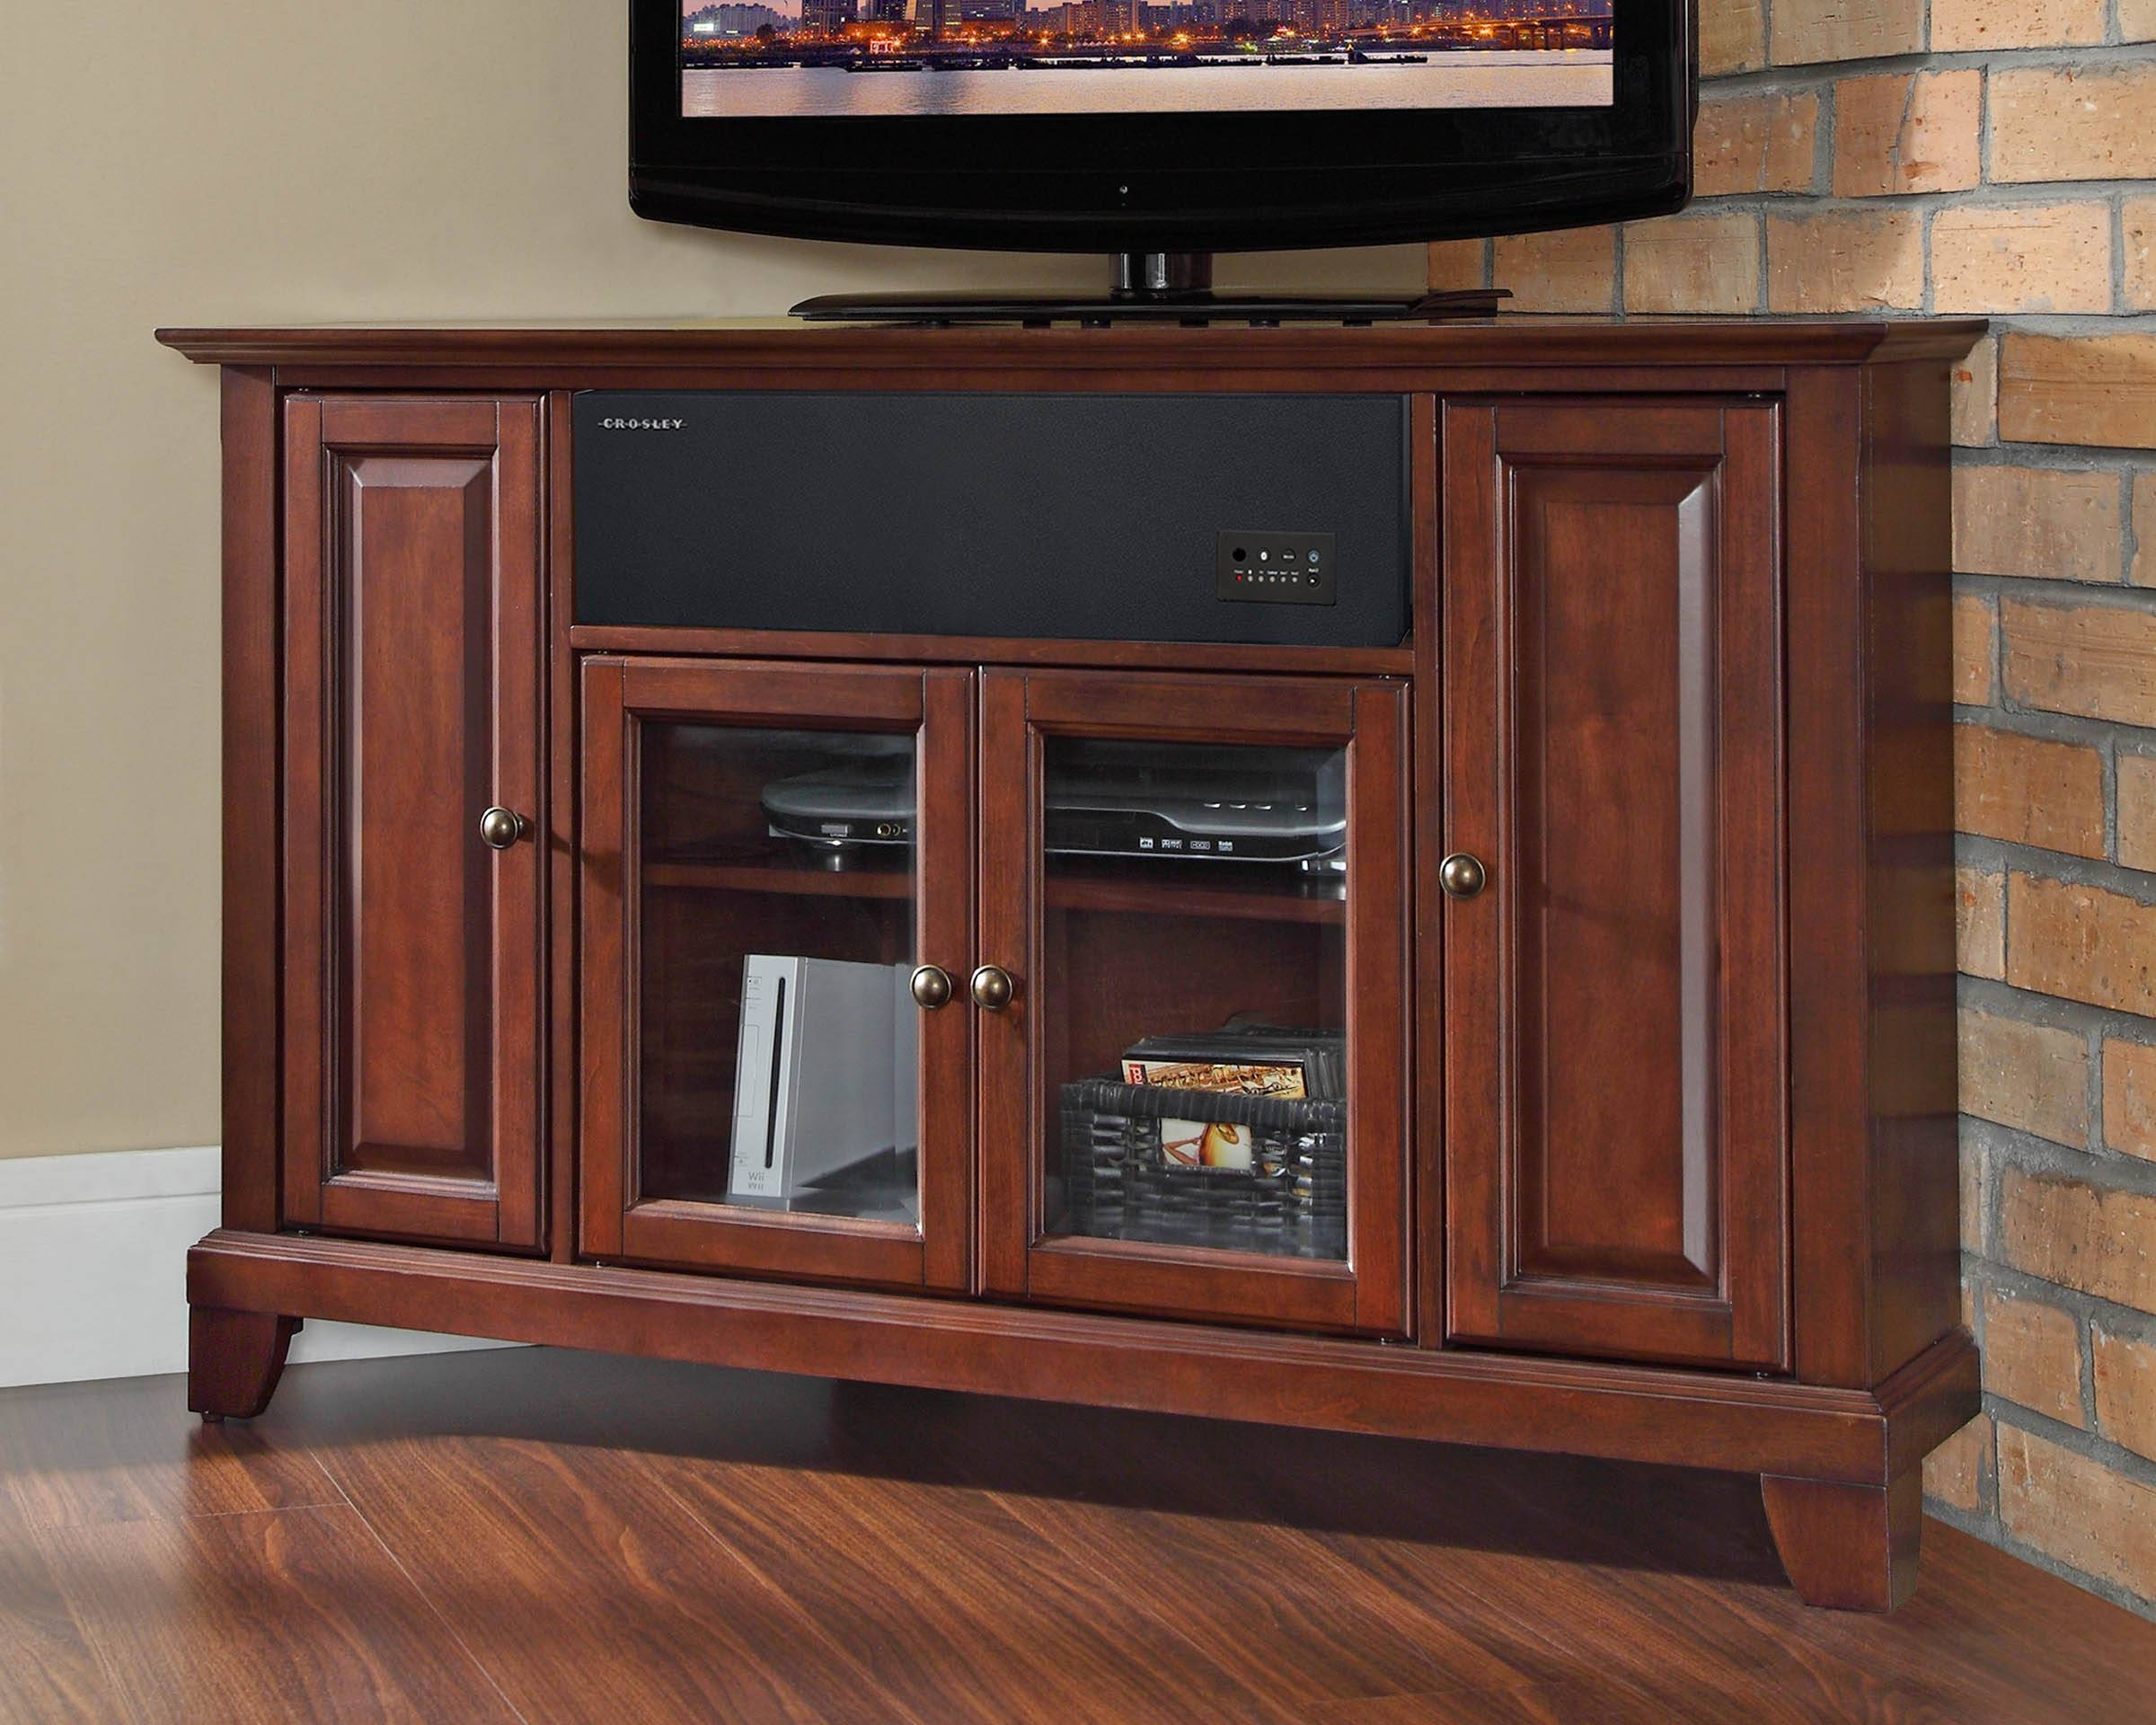 Crosley Furniture Newport 48 Inch Corner Aroundsound Tv Stand In regarding Mahogany Corner Tv Cabinets (Image 7 of 15)